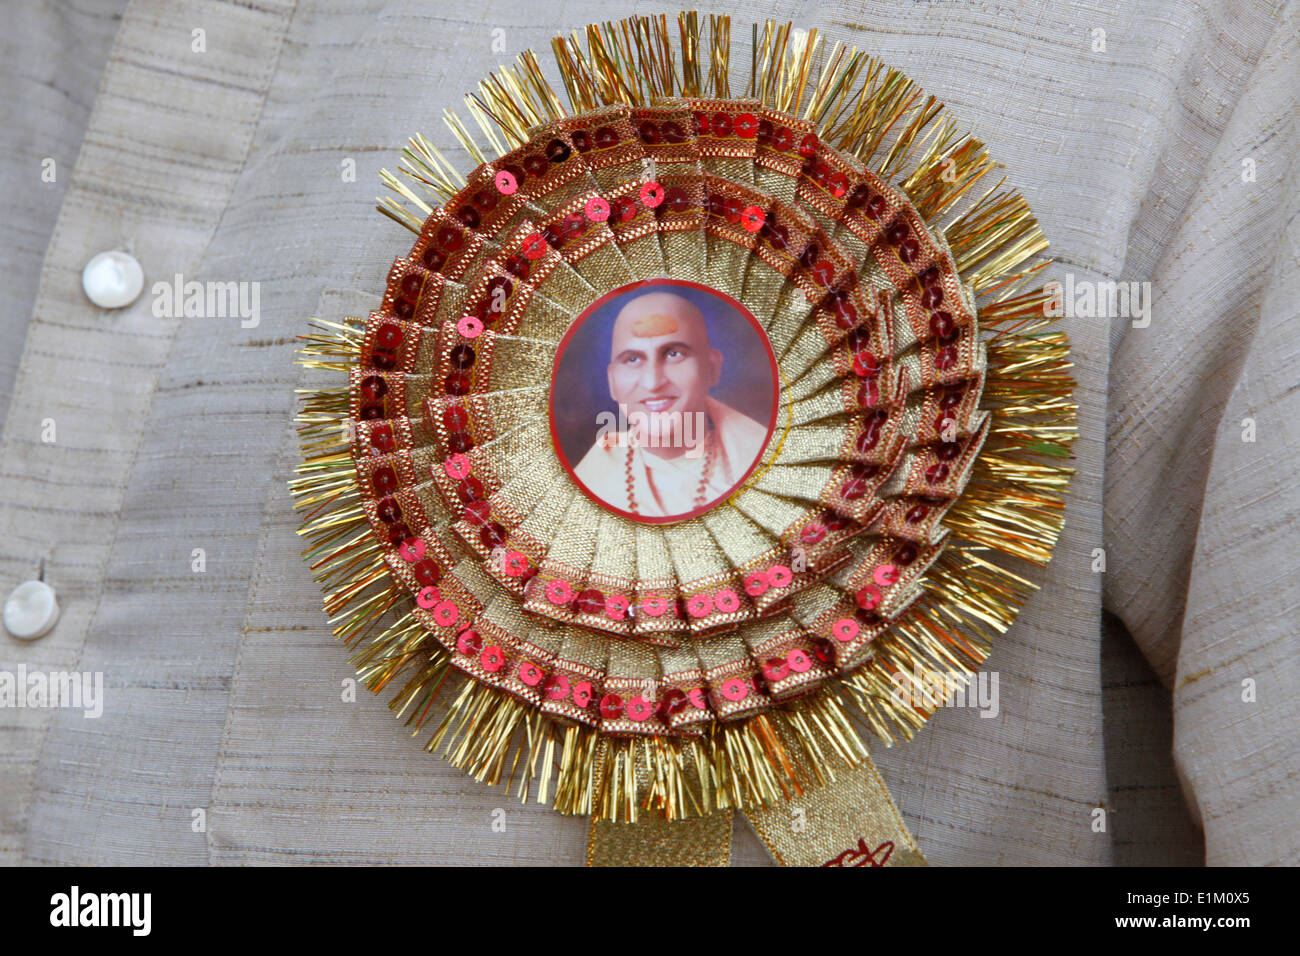 Devotee wearing a button with a portrait of spiritual leader Swami Avdeshanand Giri - Stock Image